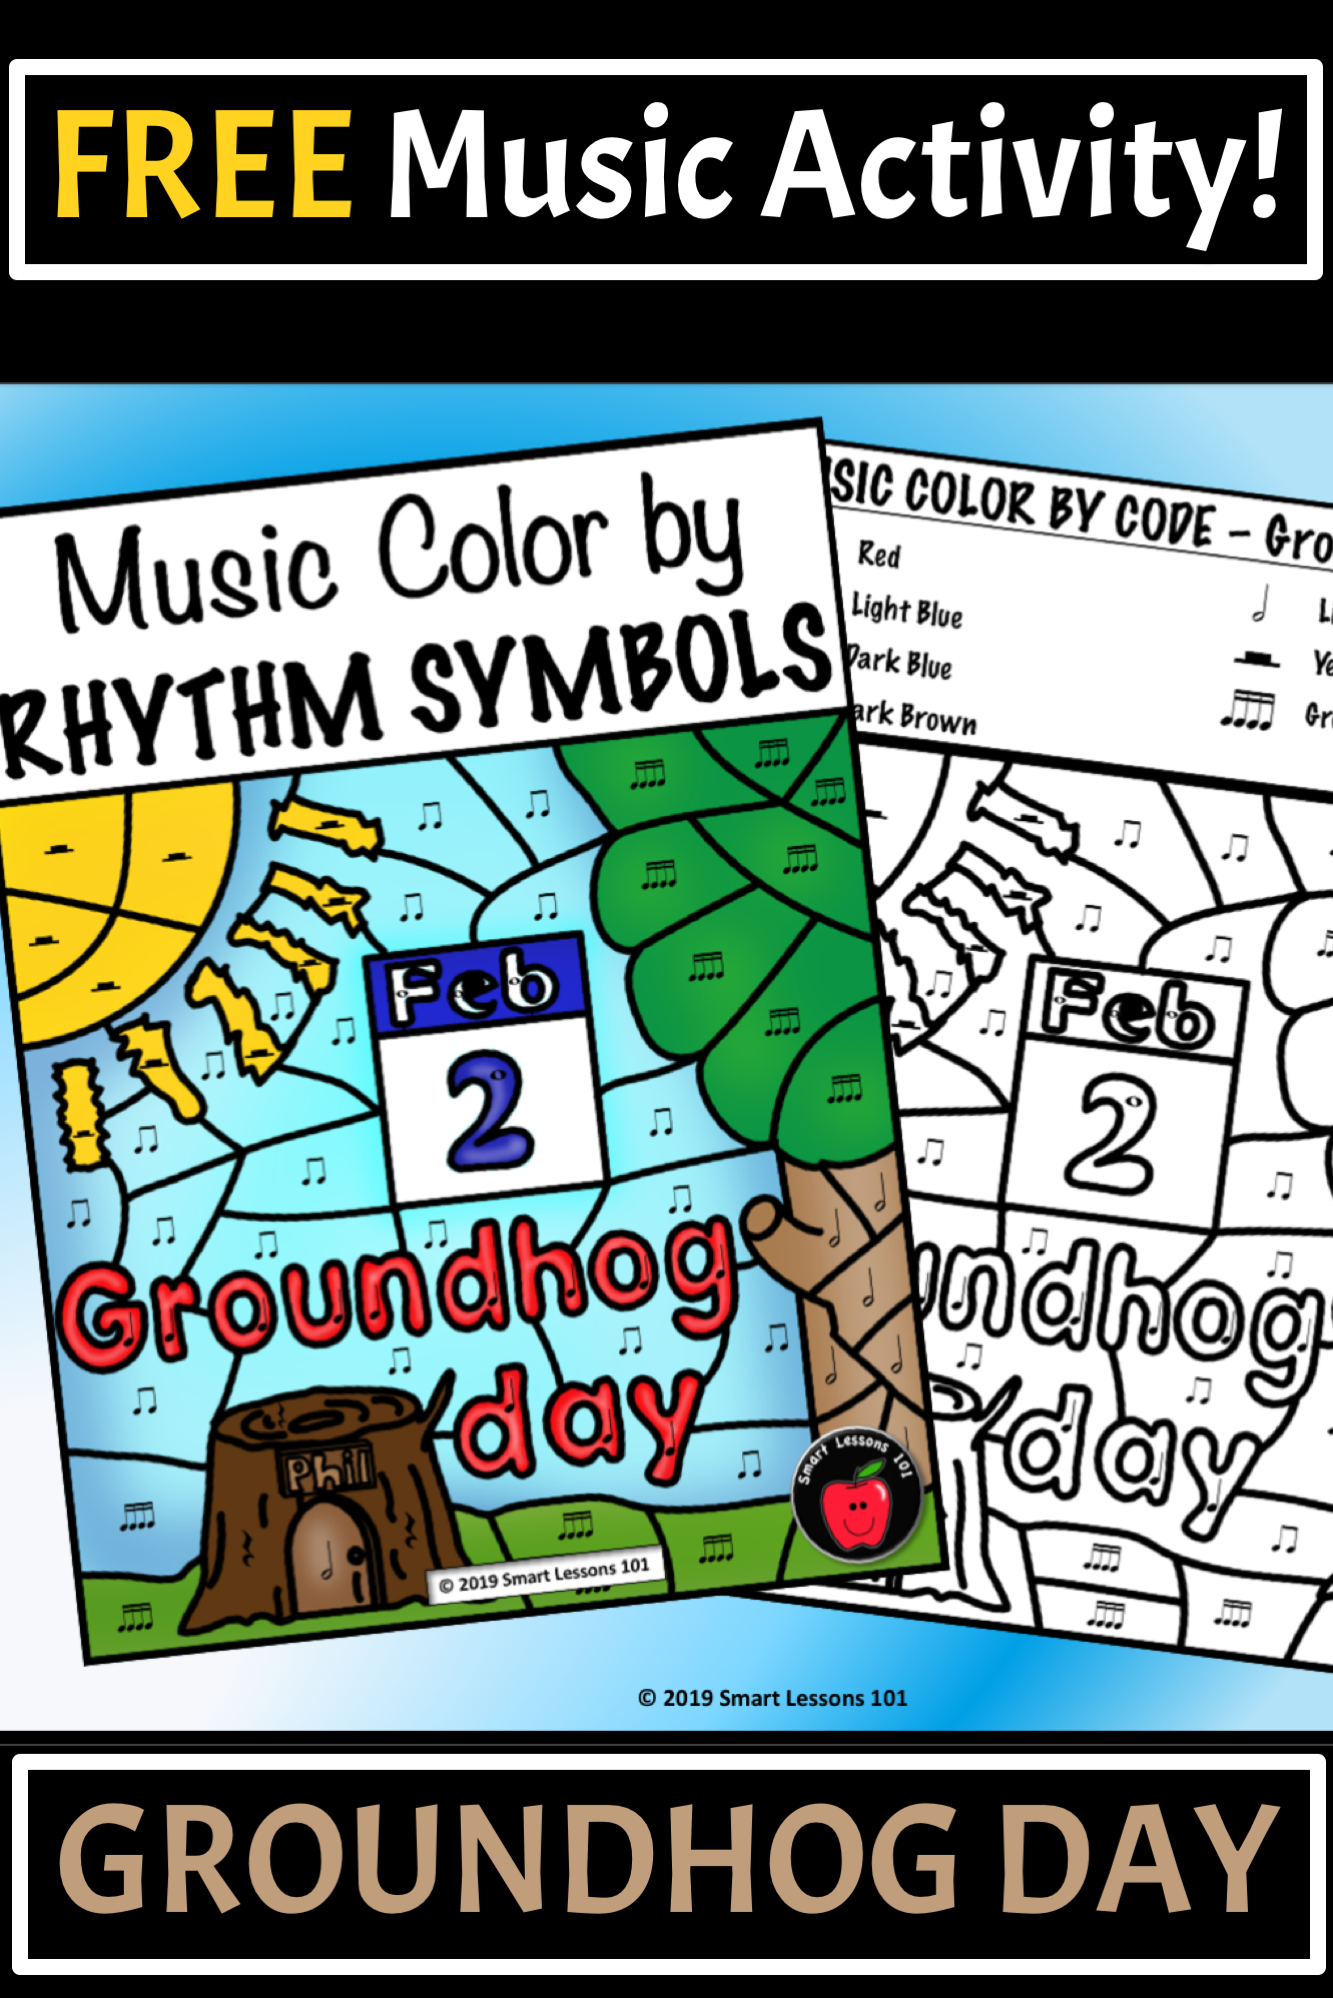 Free Groundhog Day Music Color By Rhythm Groundhog Day